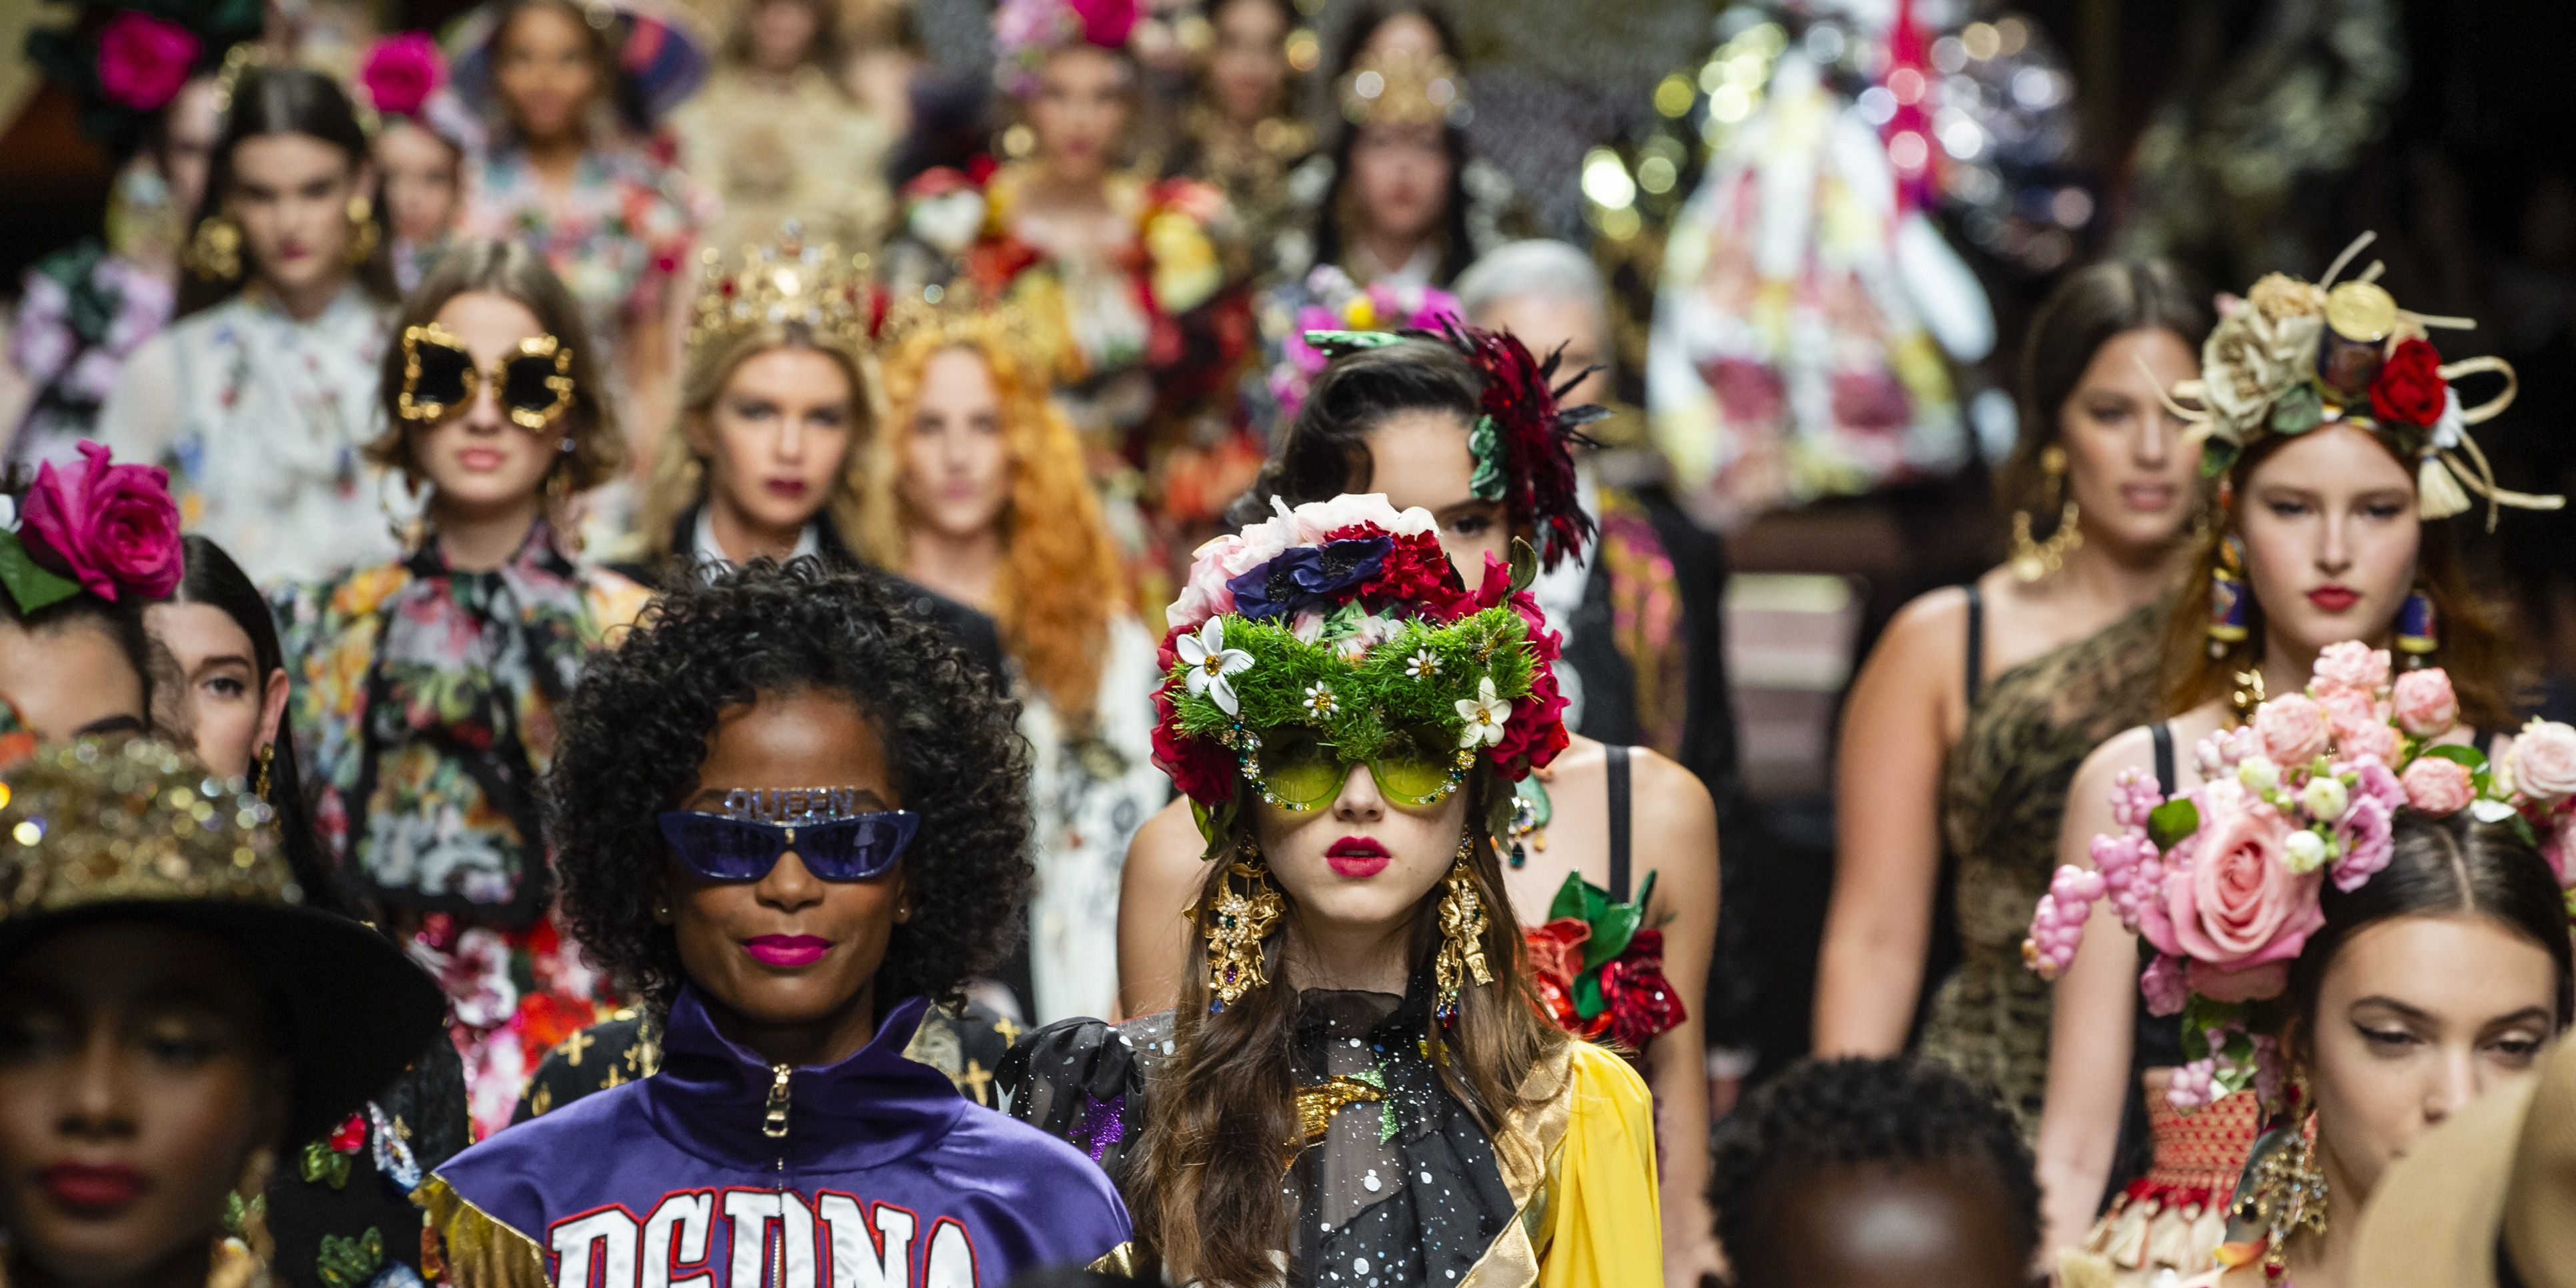 Dolce and gabbana diversity